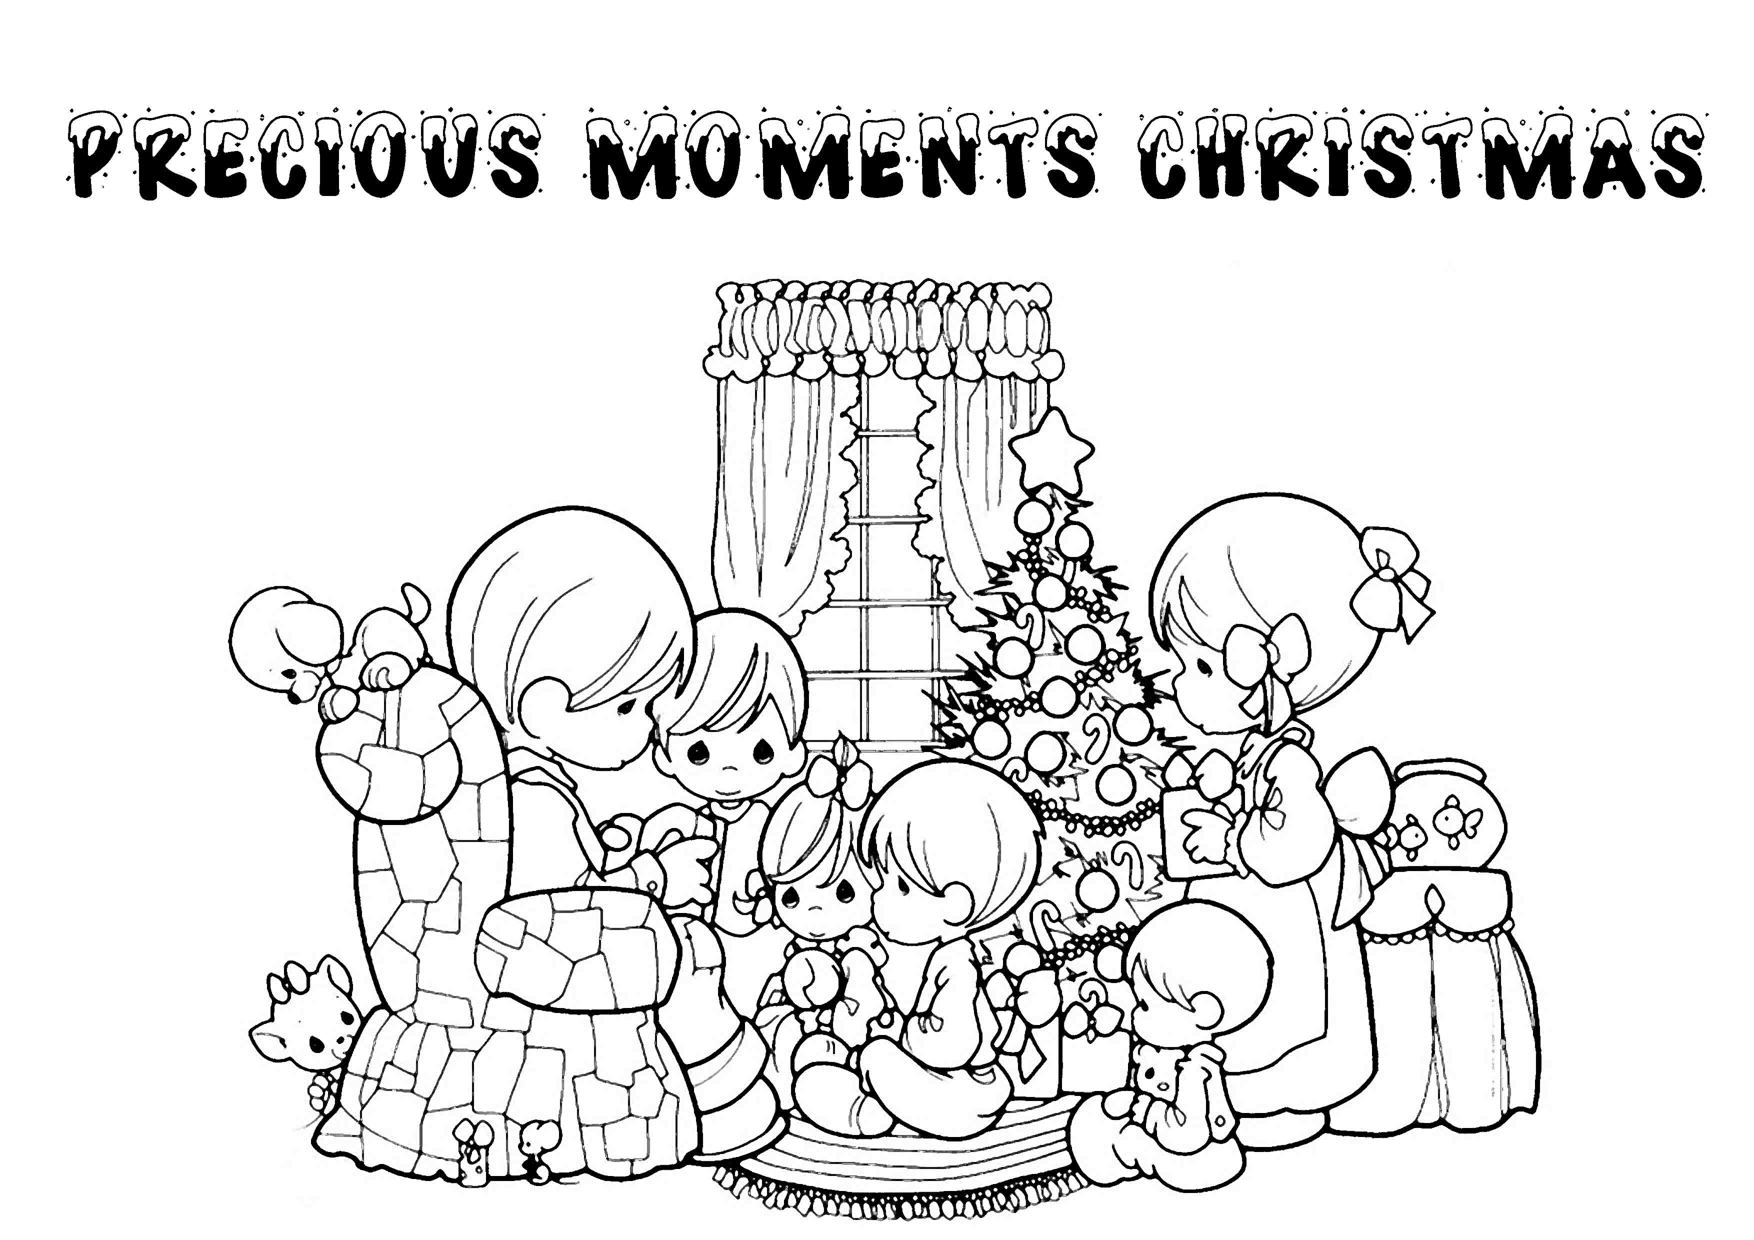 Christmas Coloring Printable Sheets With Print Download Pages For Kids